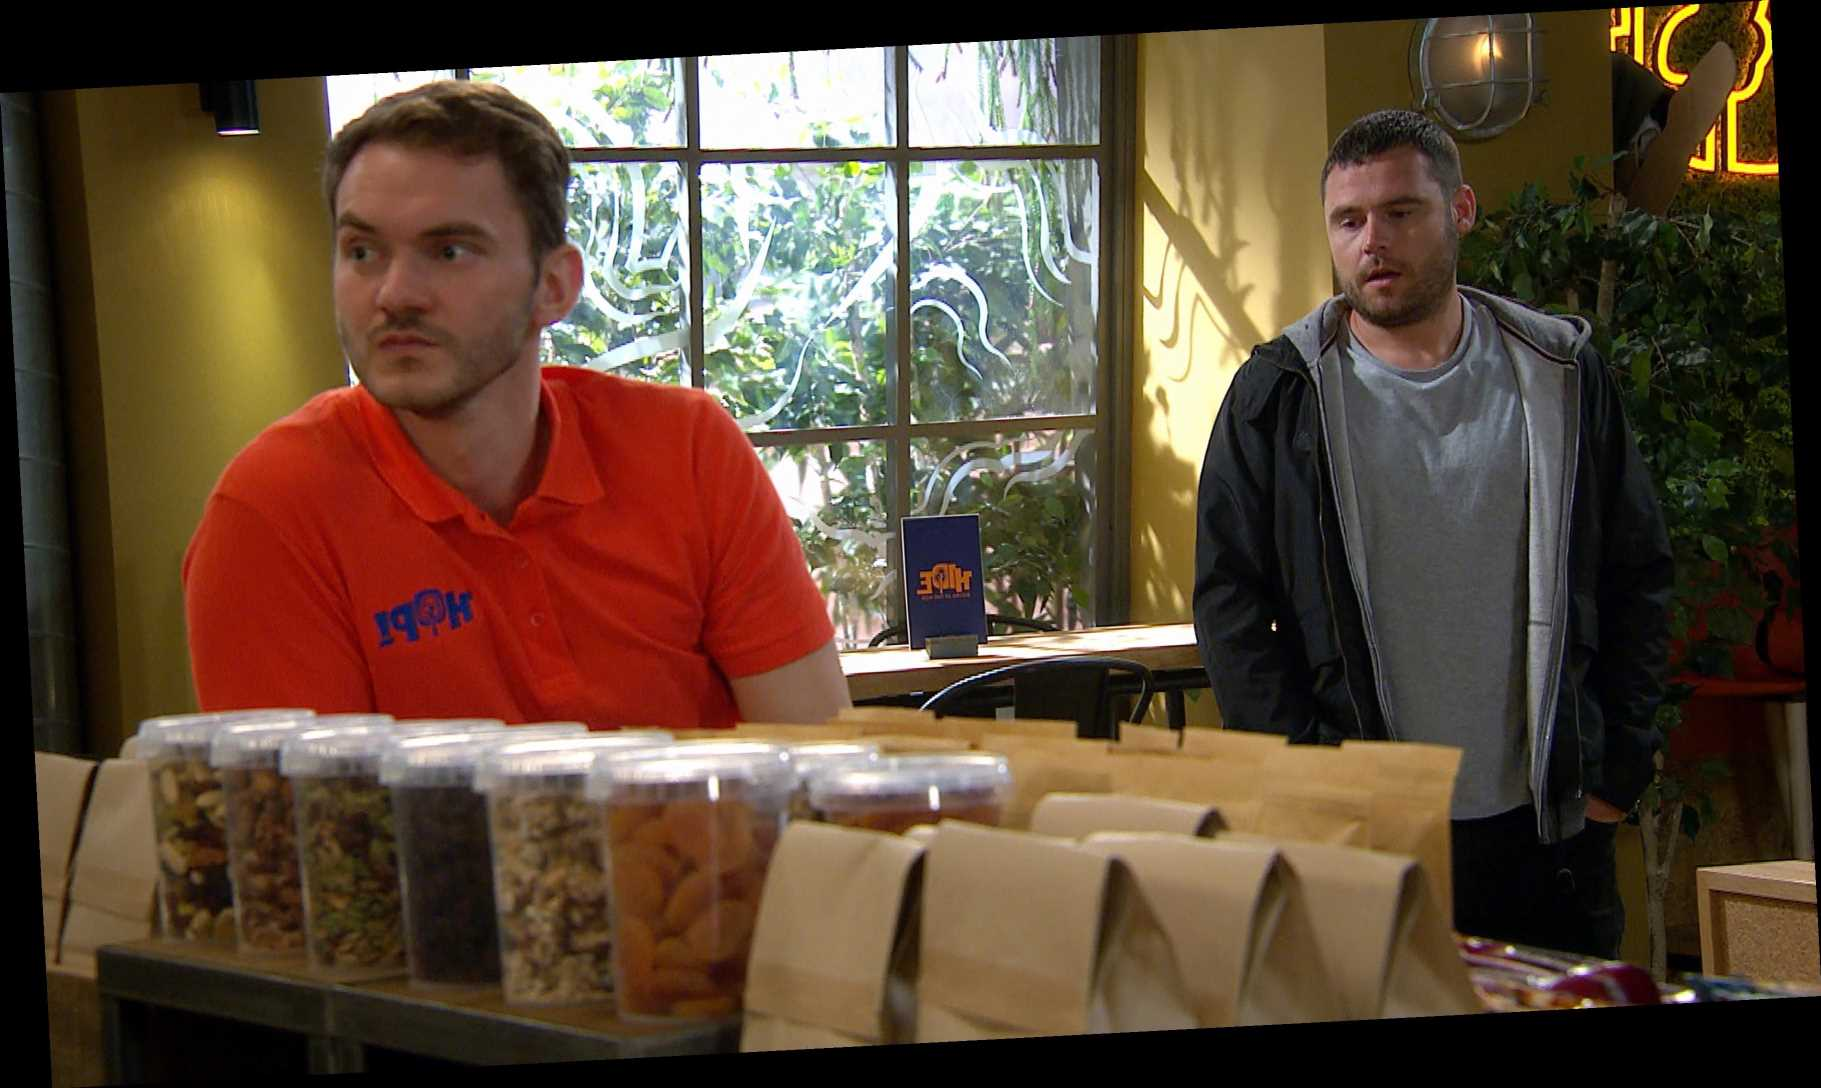 Emmerdale spoilers: Aaron Dingle goes on a date with Ben despite bullying him for being gay at school